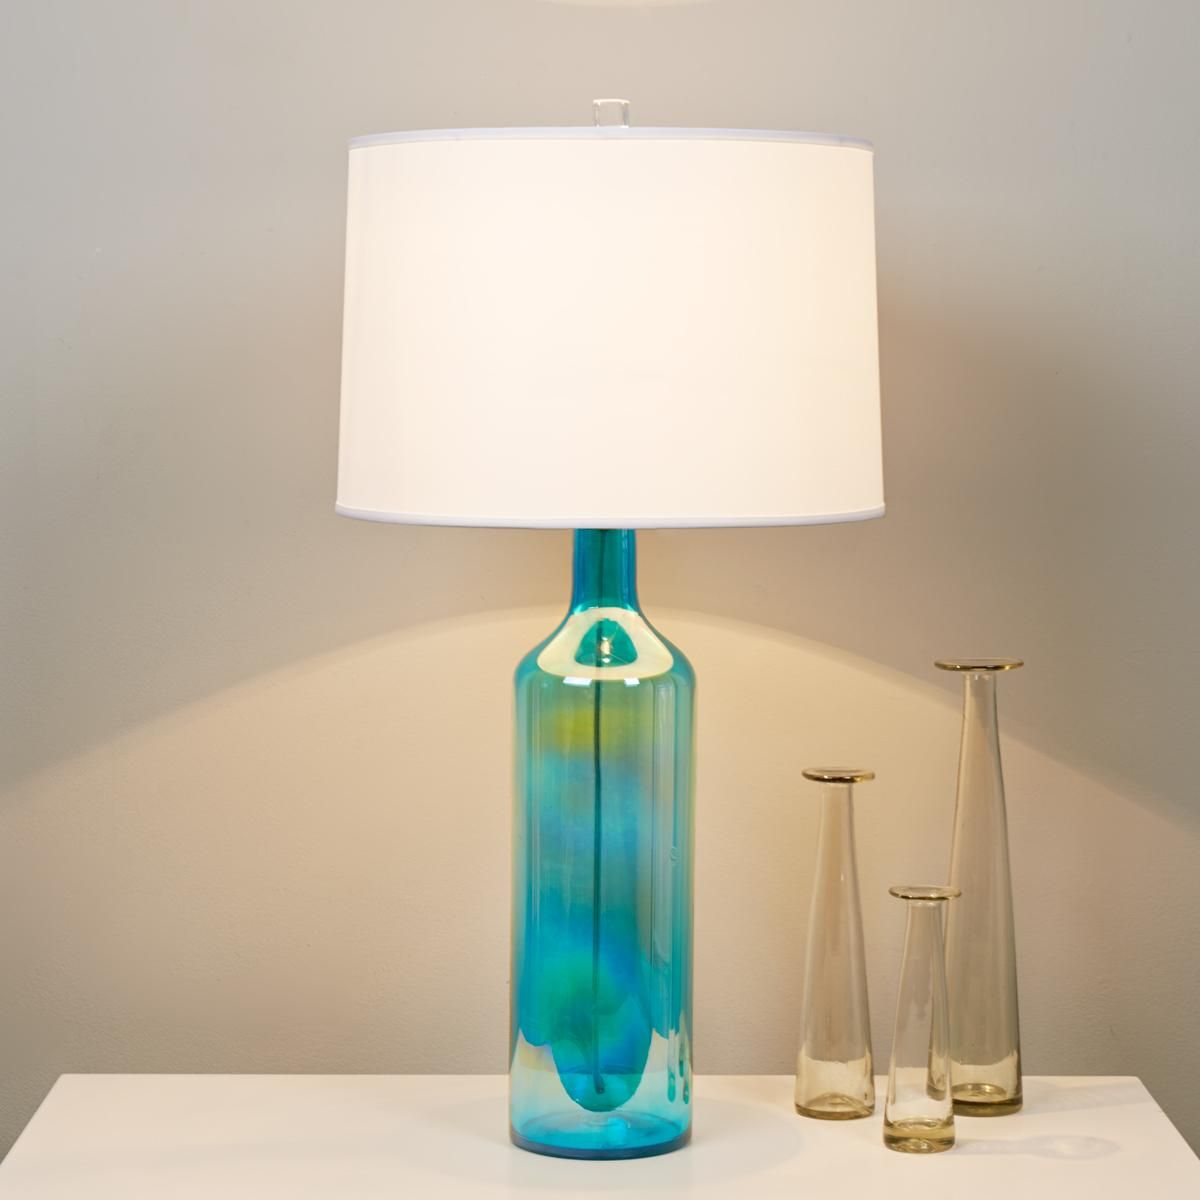 bottle glass table lamp glass table lamps lamp shades clear glass. Black Bedroom Furniture Sets. Home Design Ideas